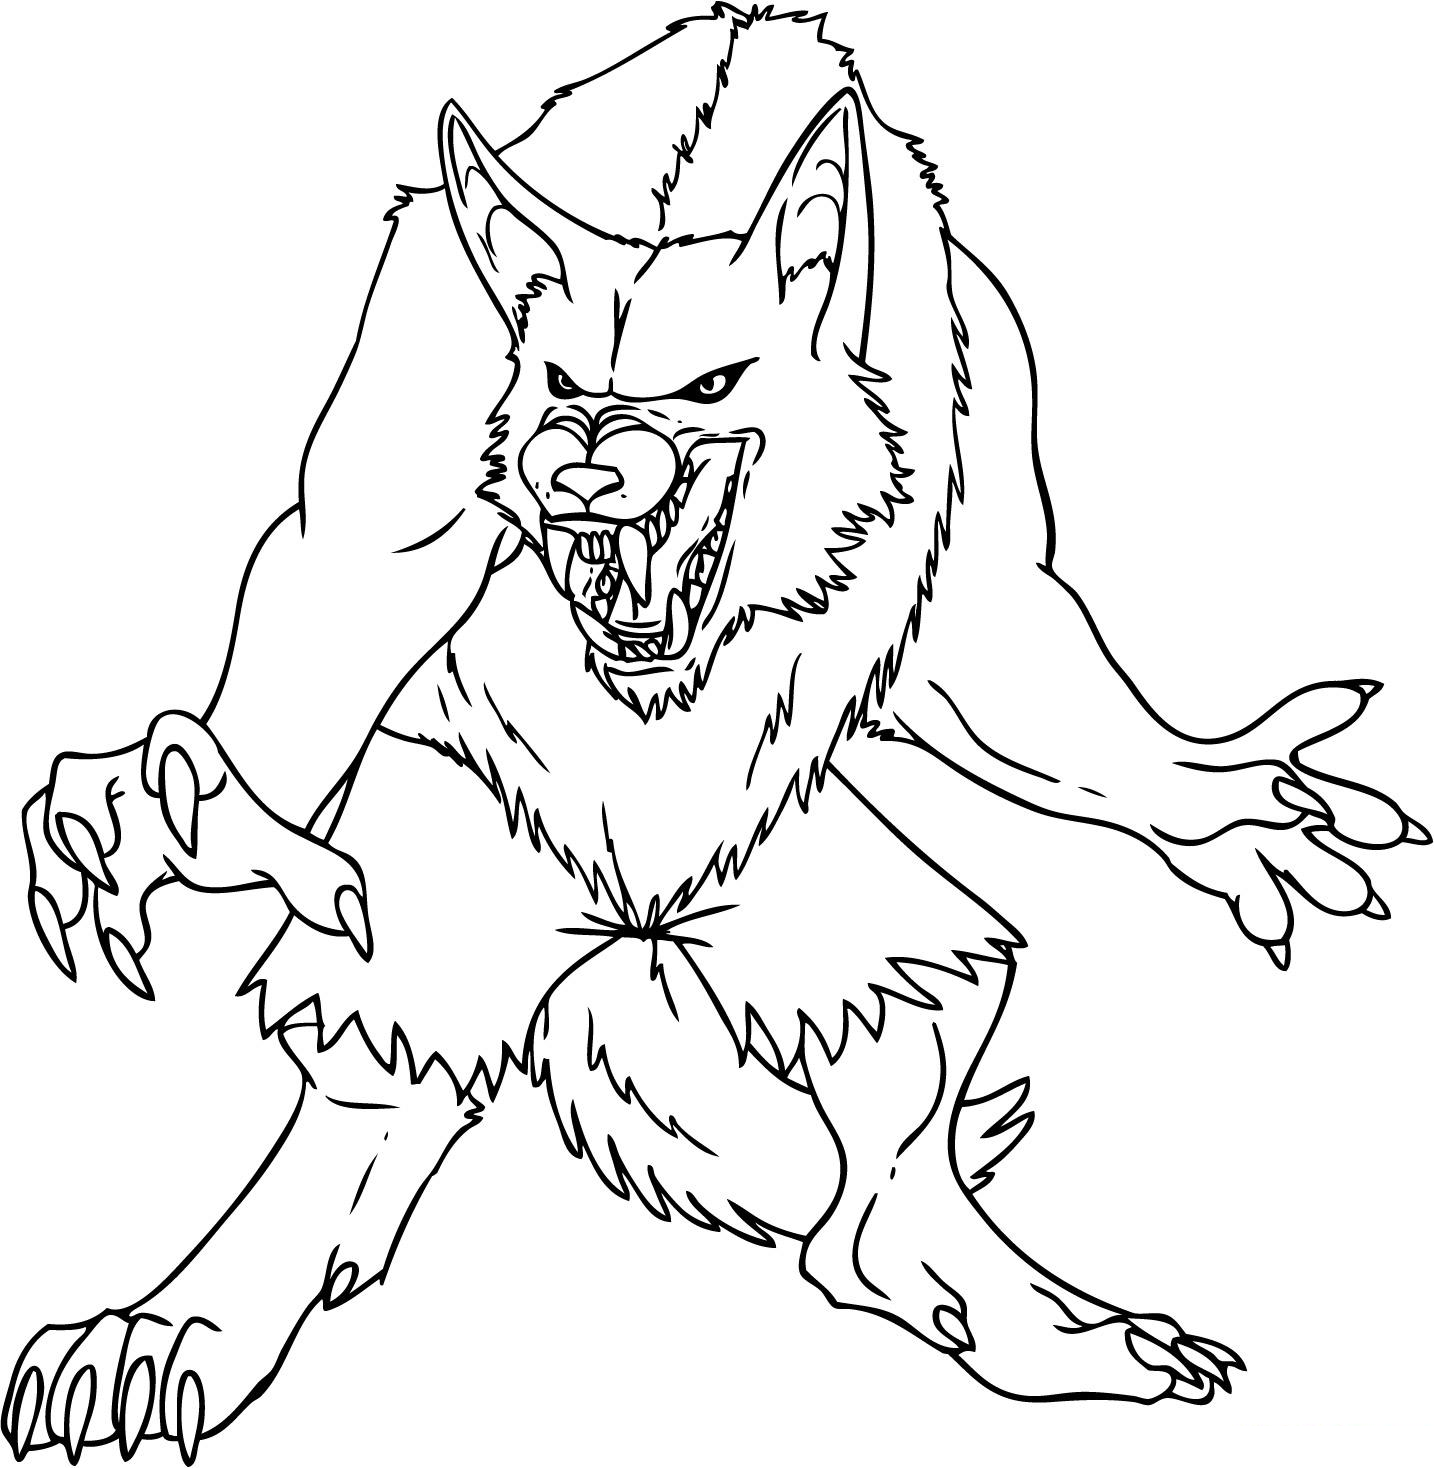 Werewolf Coloring Page Google Search Monster Coloring Pages Werewolf Animal Coloring Pages